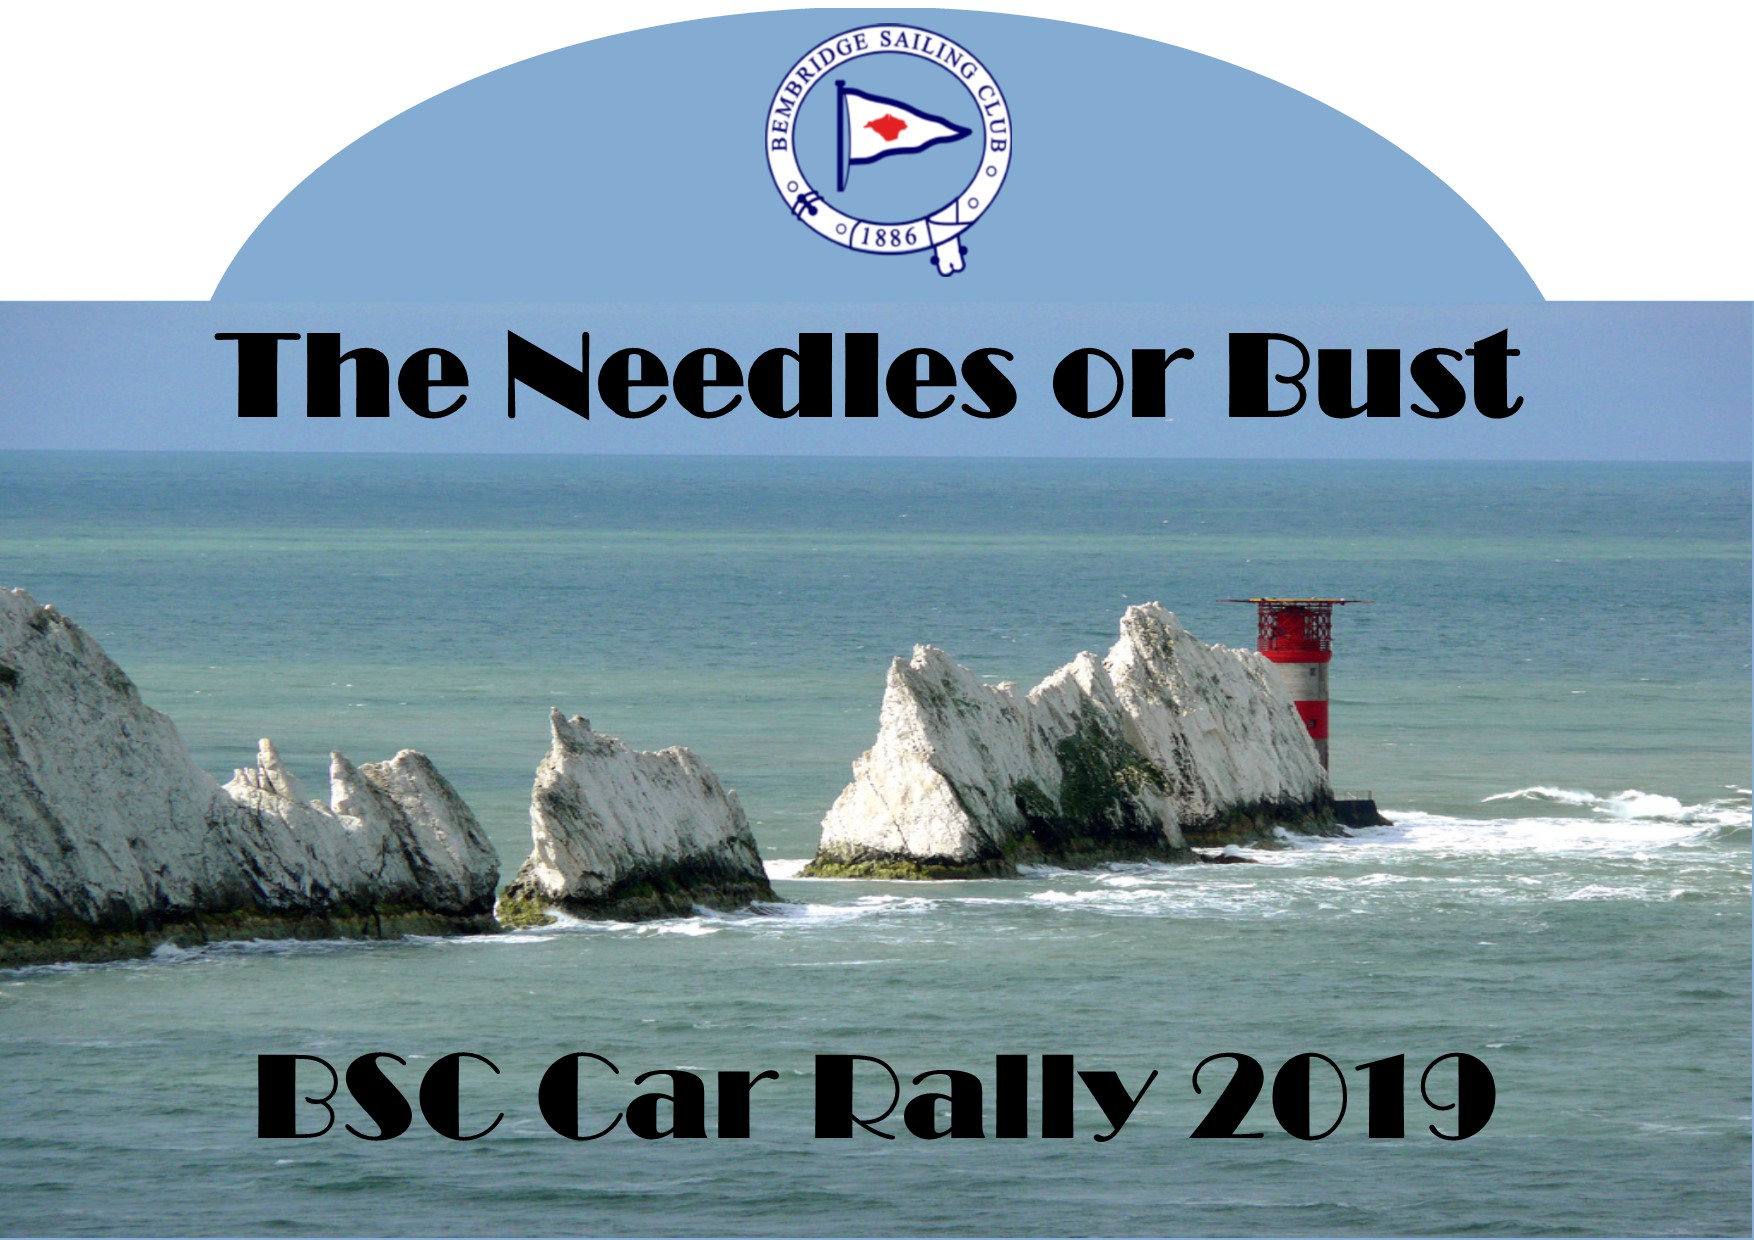 BSC Classic Car Rally 'The Needles or Bust' May 26 2019